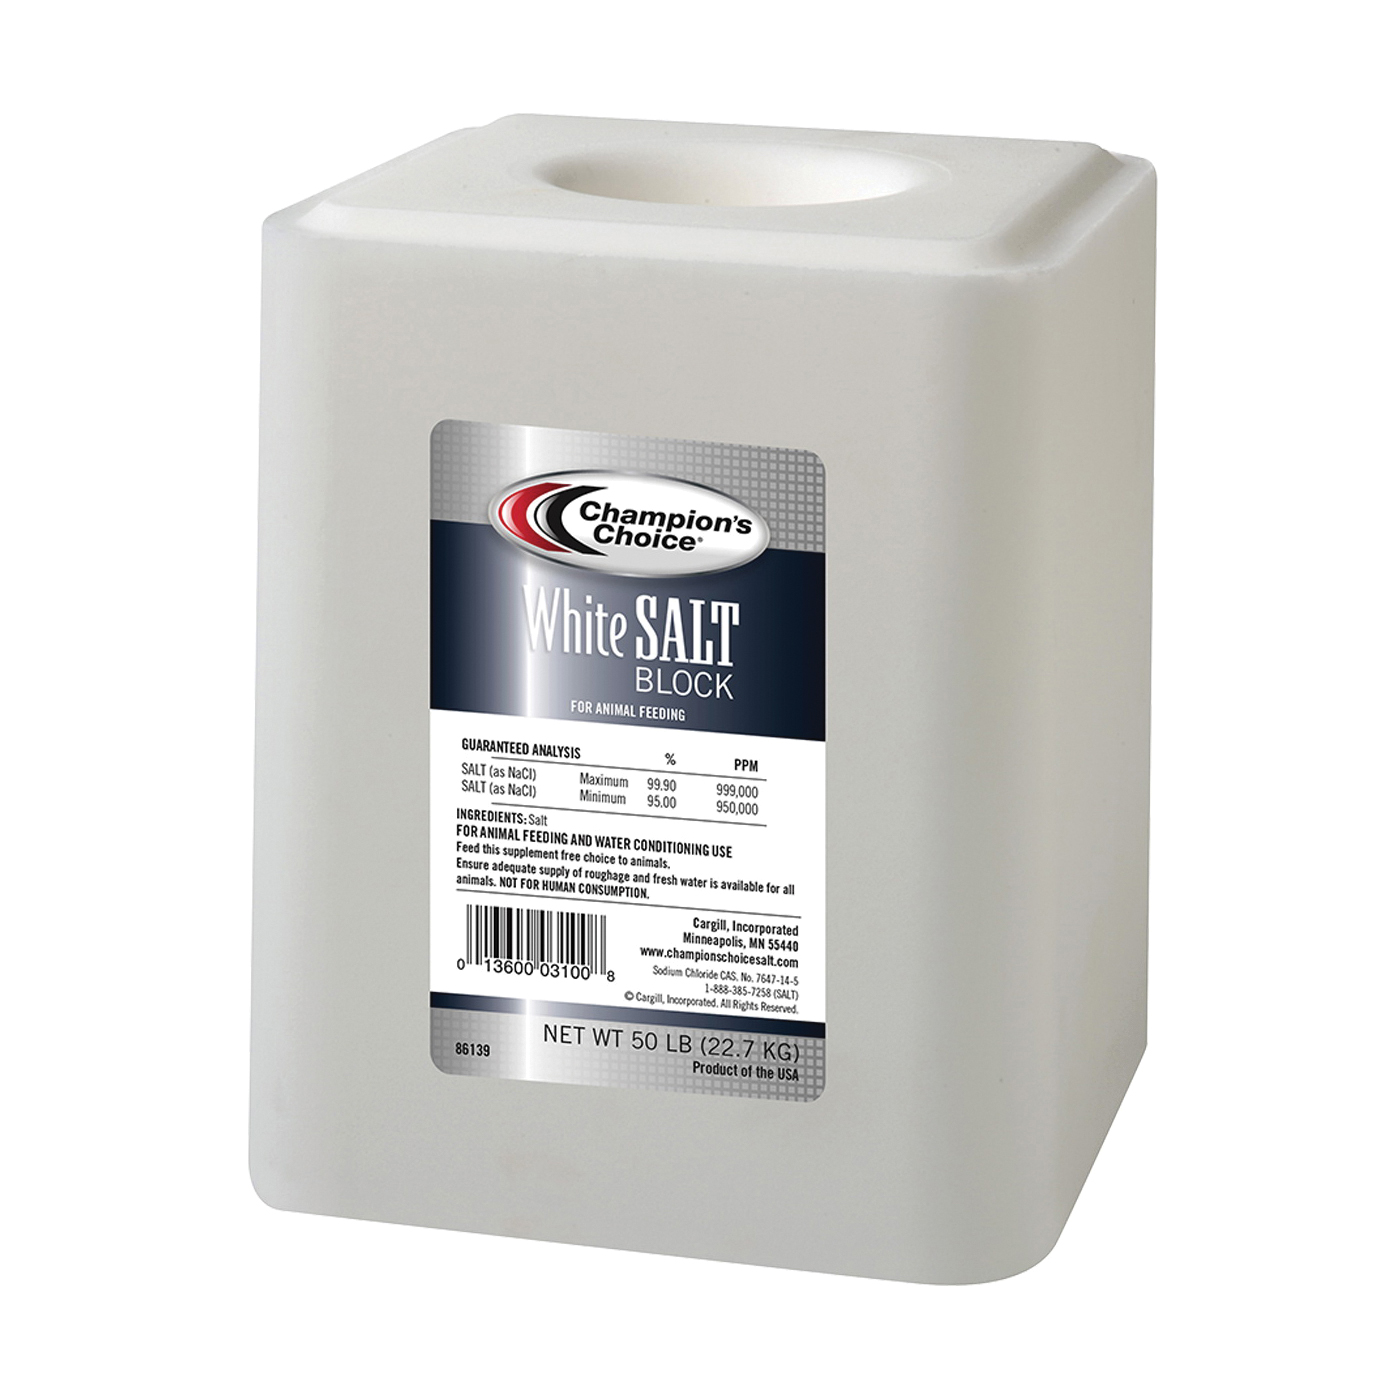 Picture of Cargill Champion's Choice 100012578 Salt Block, 50 lb Package